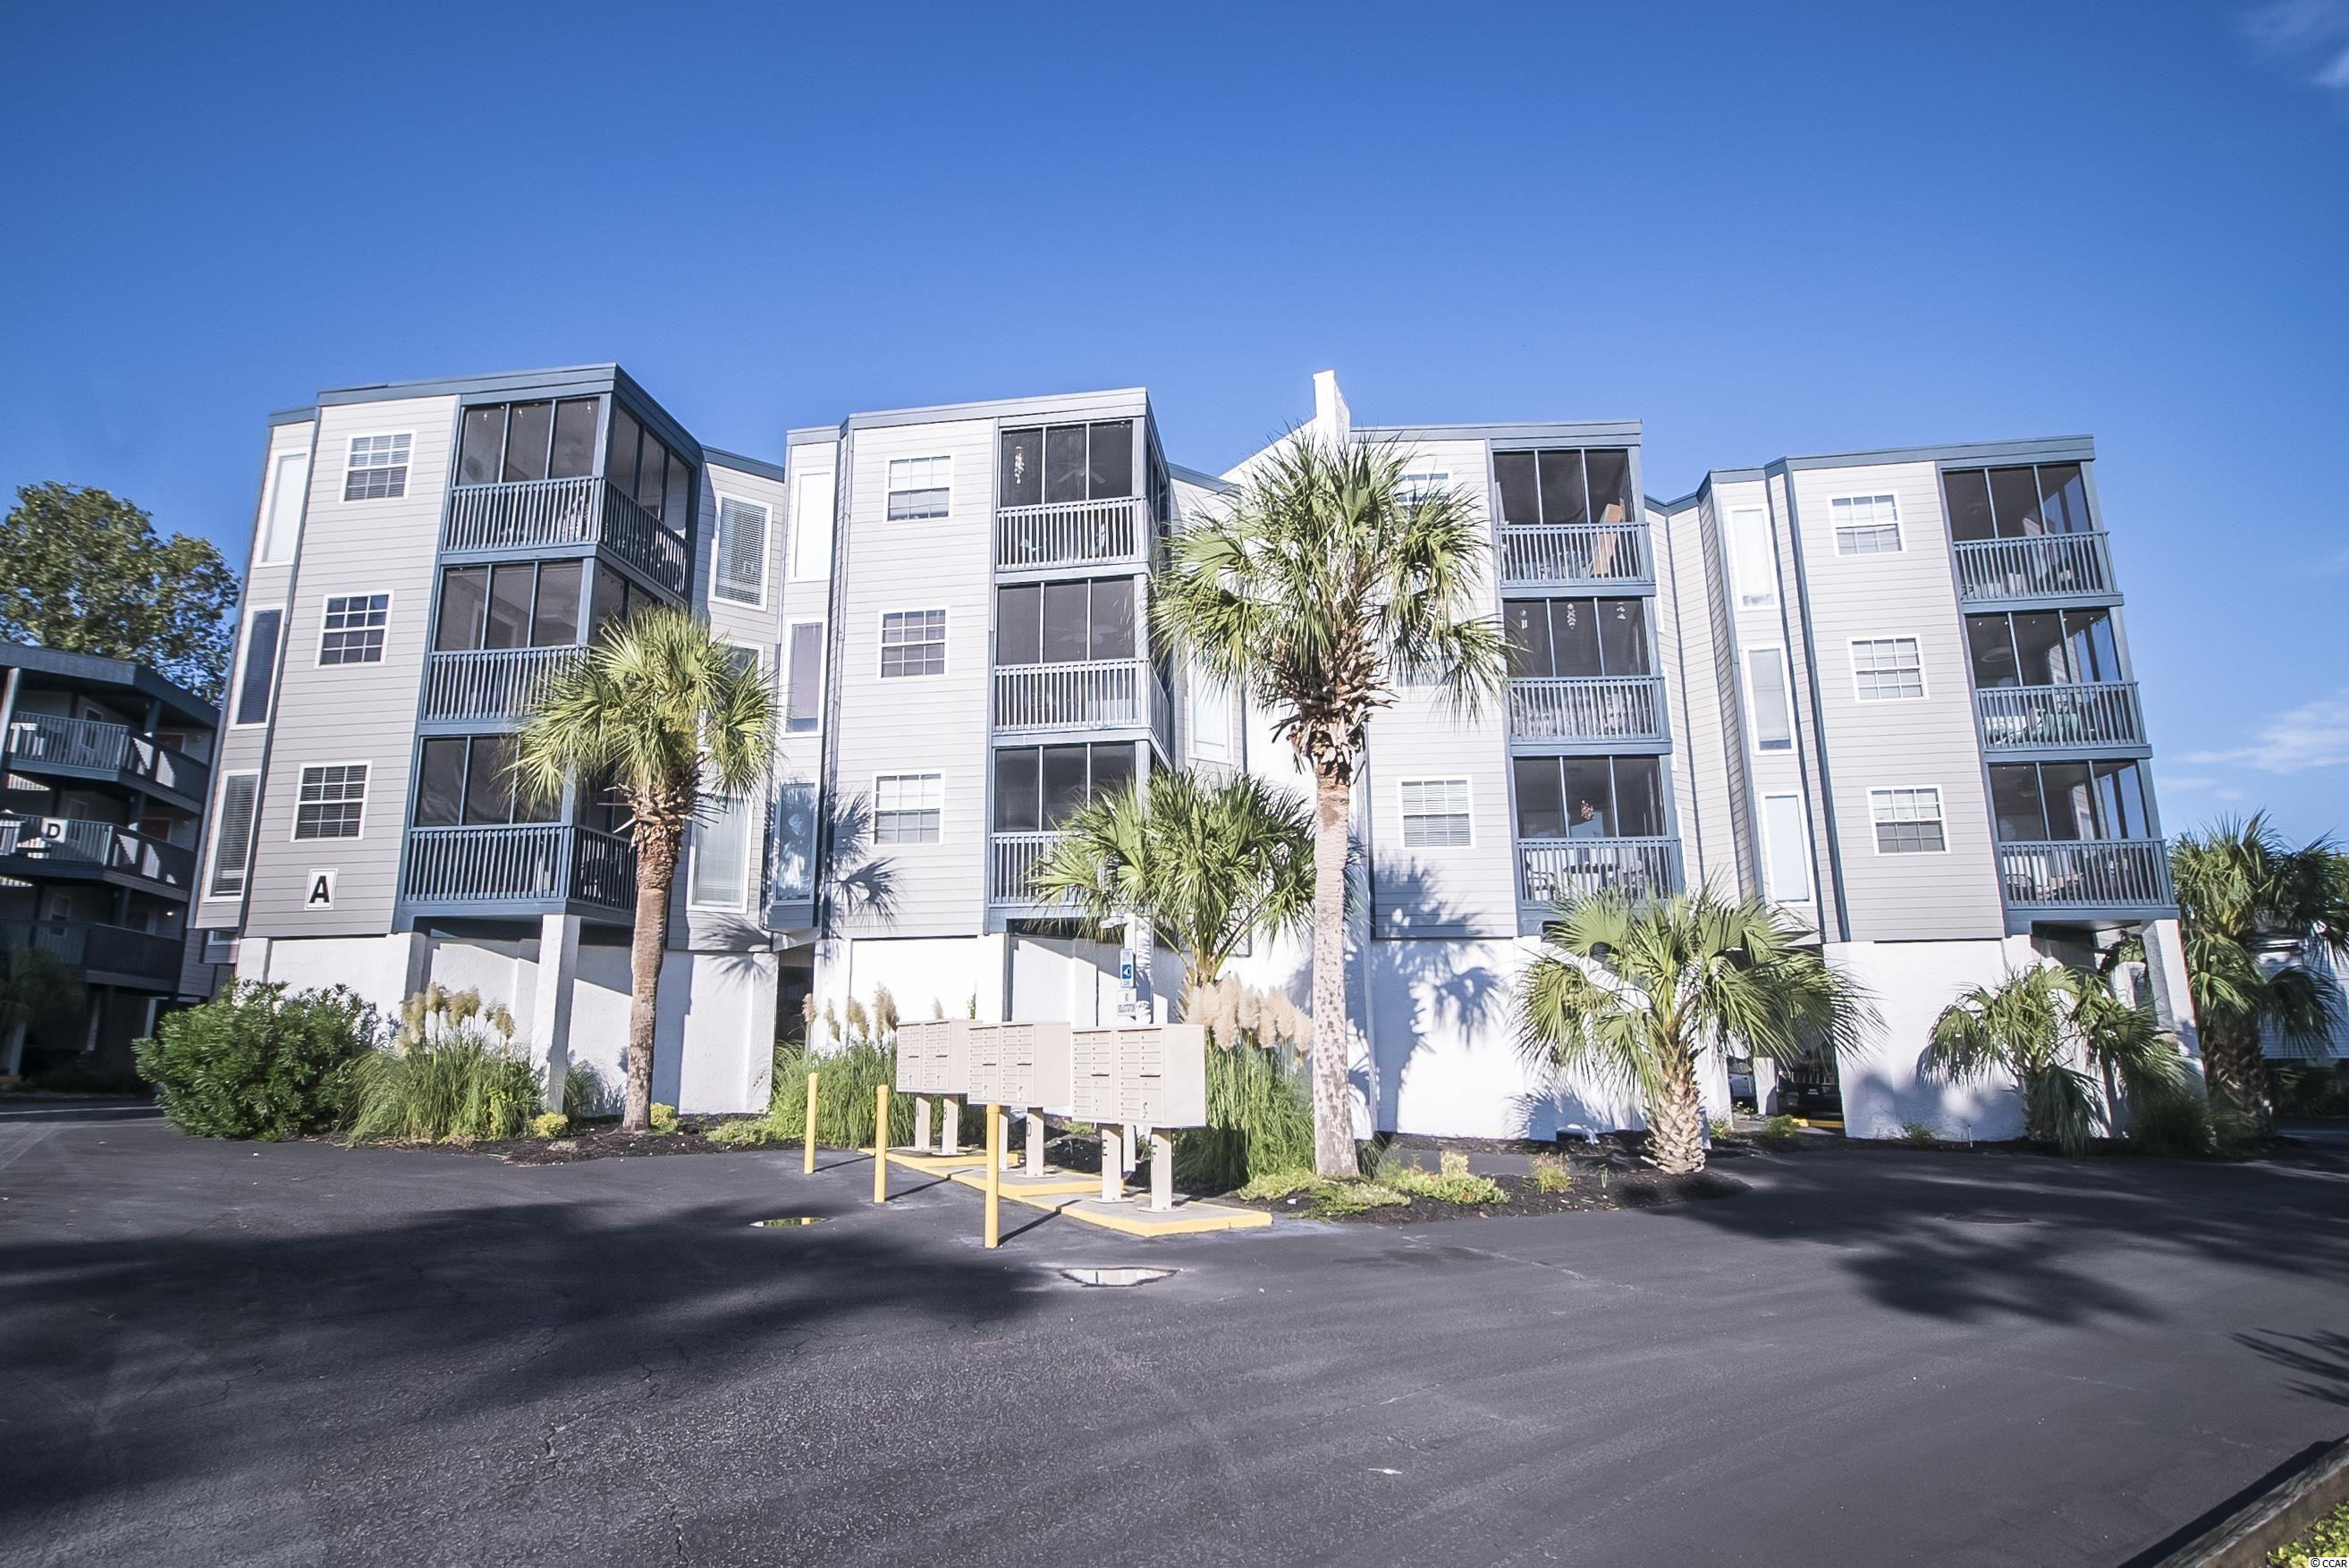 Ocean Greens 2BR/2BA fully furnished condo. Well maintained, nicely decorated and appointed.  Screened porch.  Community pool.  Short drive to the beach!